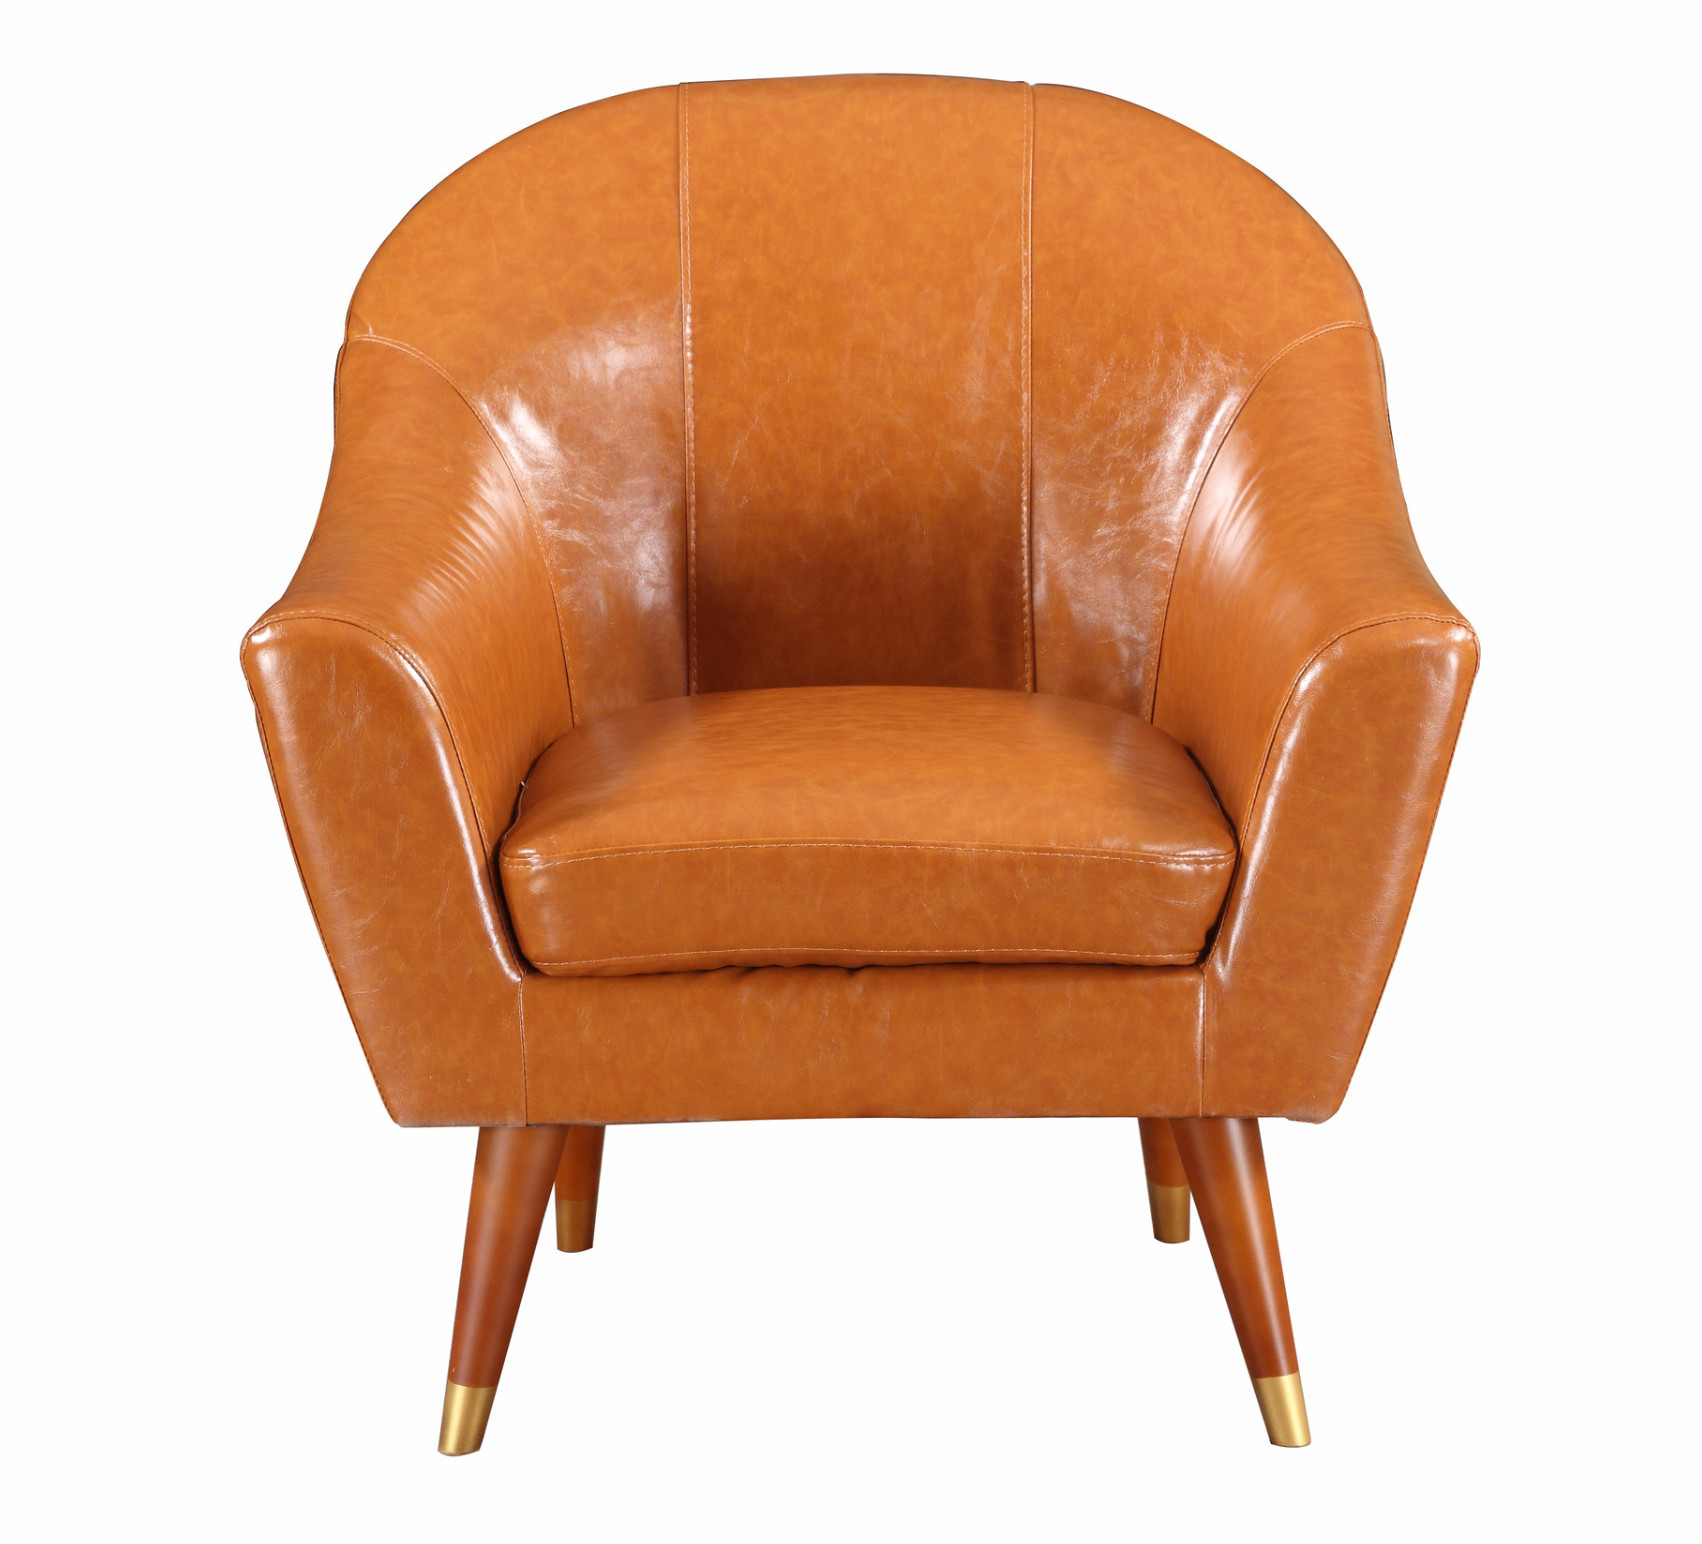 Mid Century Modern Bonded Leather Living Room Accent Chair   Walmart.com